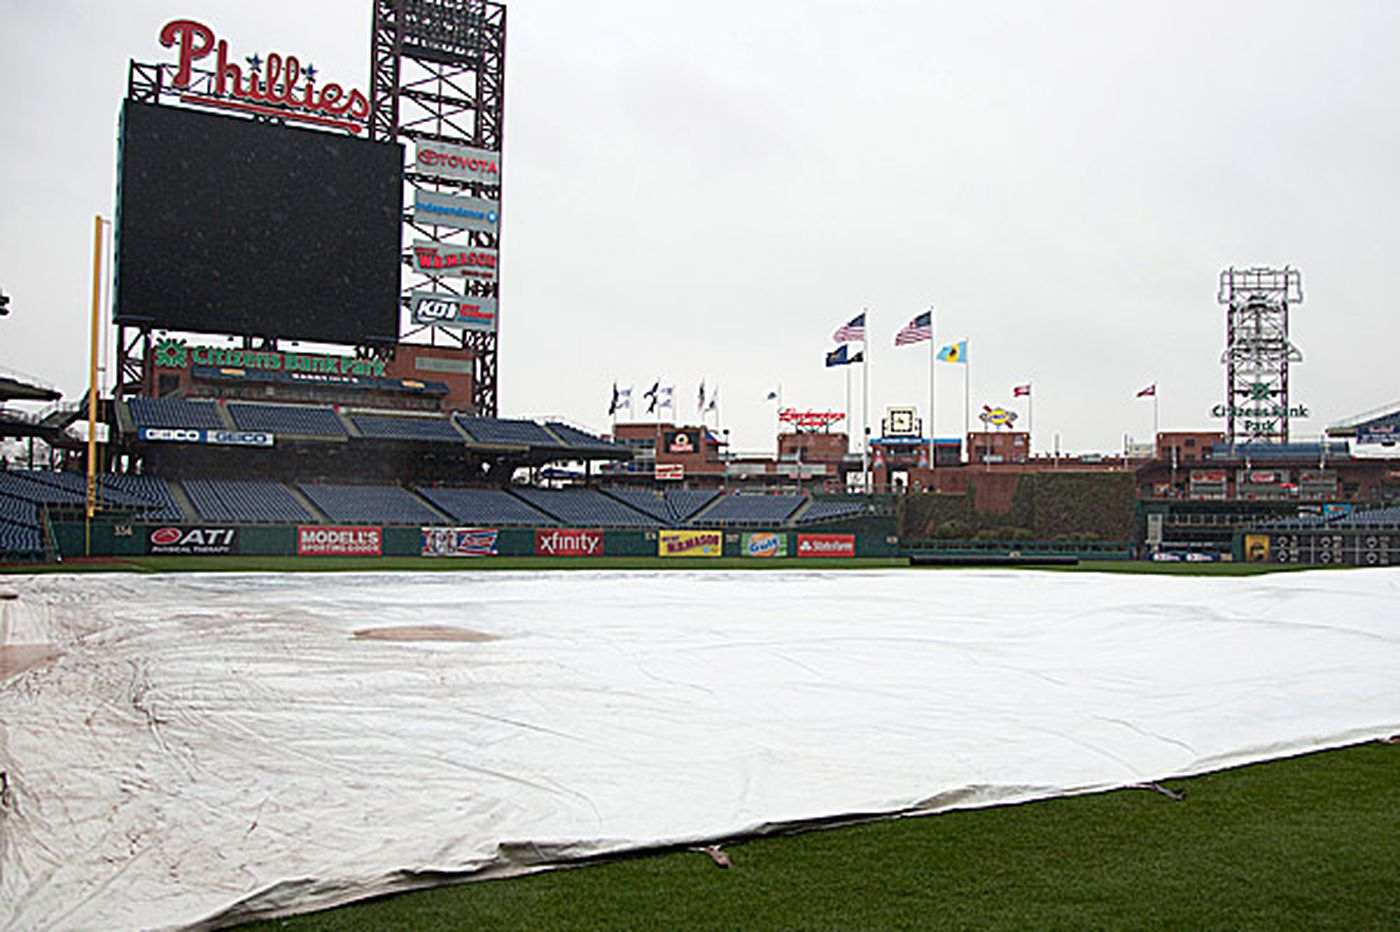 Gloomy feelings about the Phillies